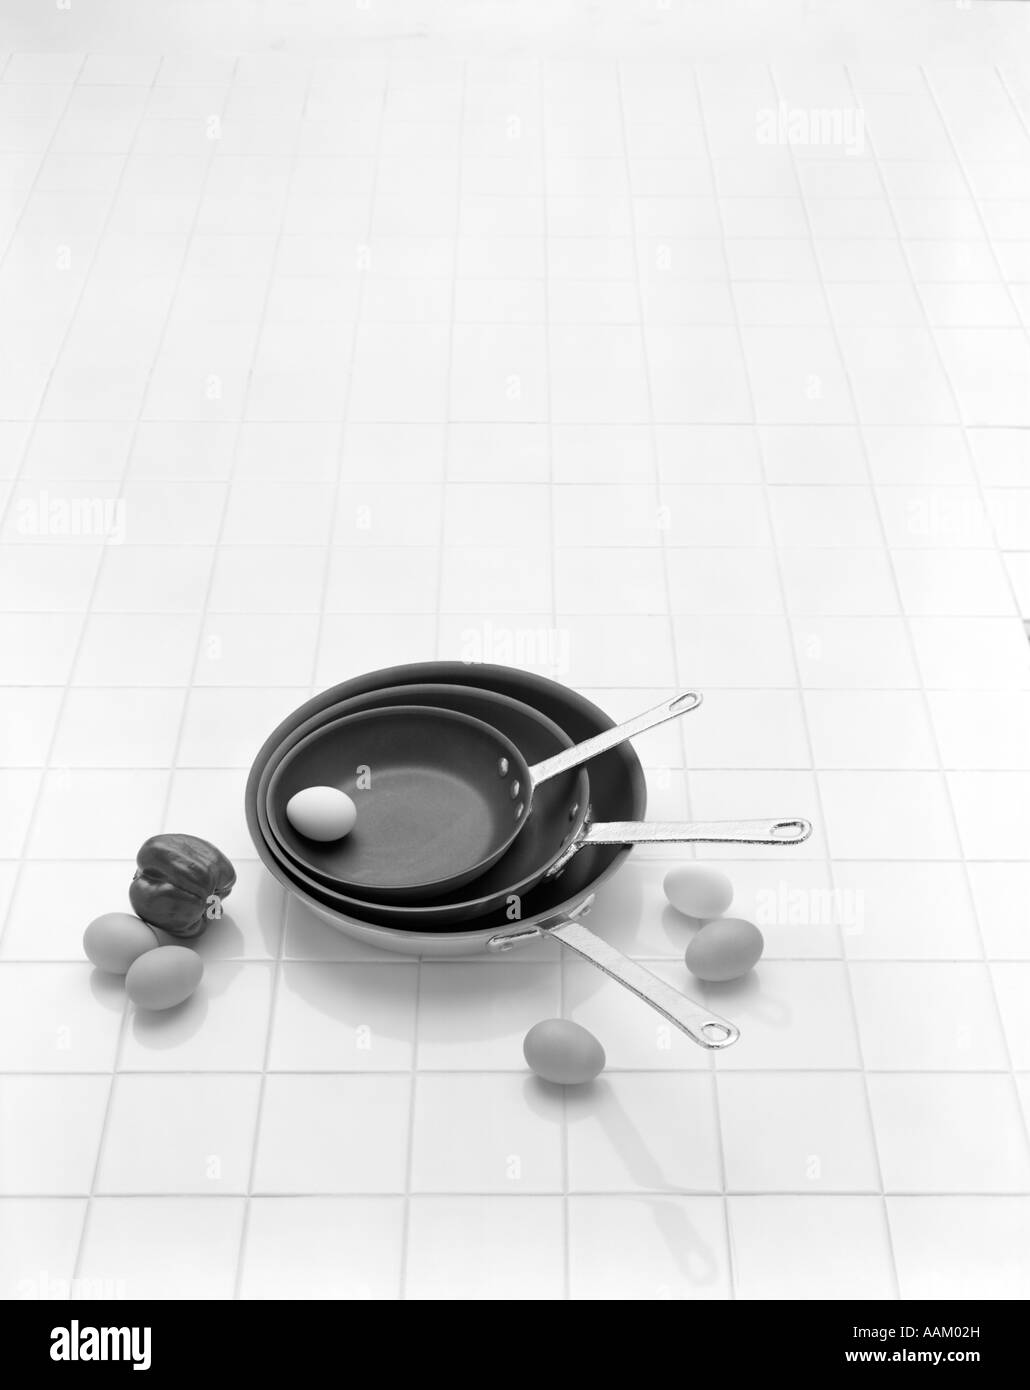 EGGS FRYING PANS TILE COUNTER - Stock Image